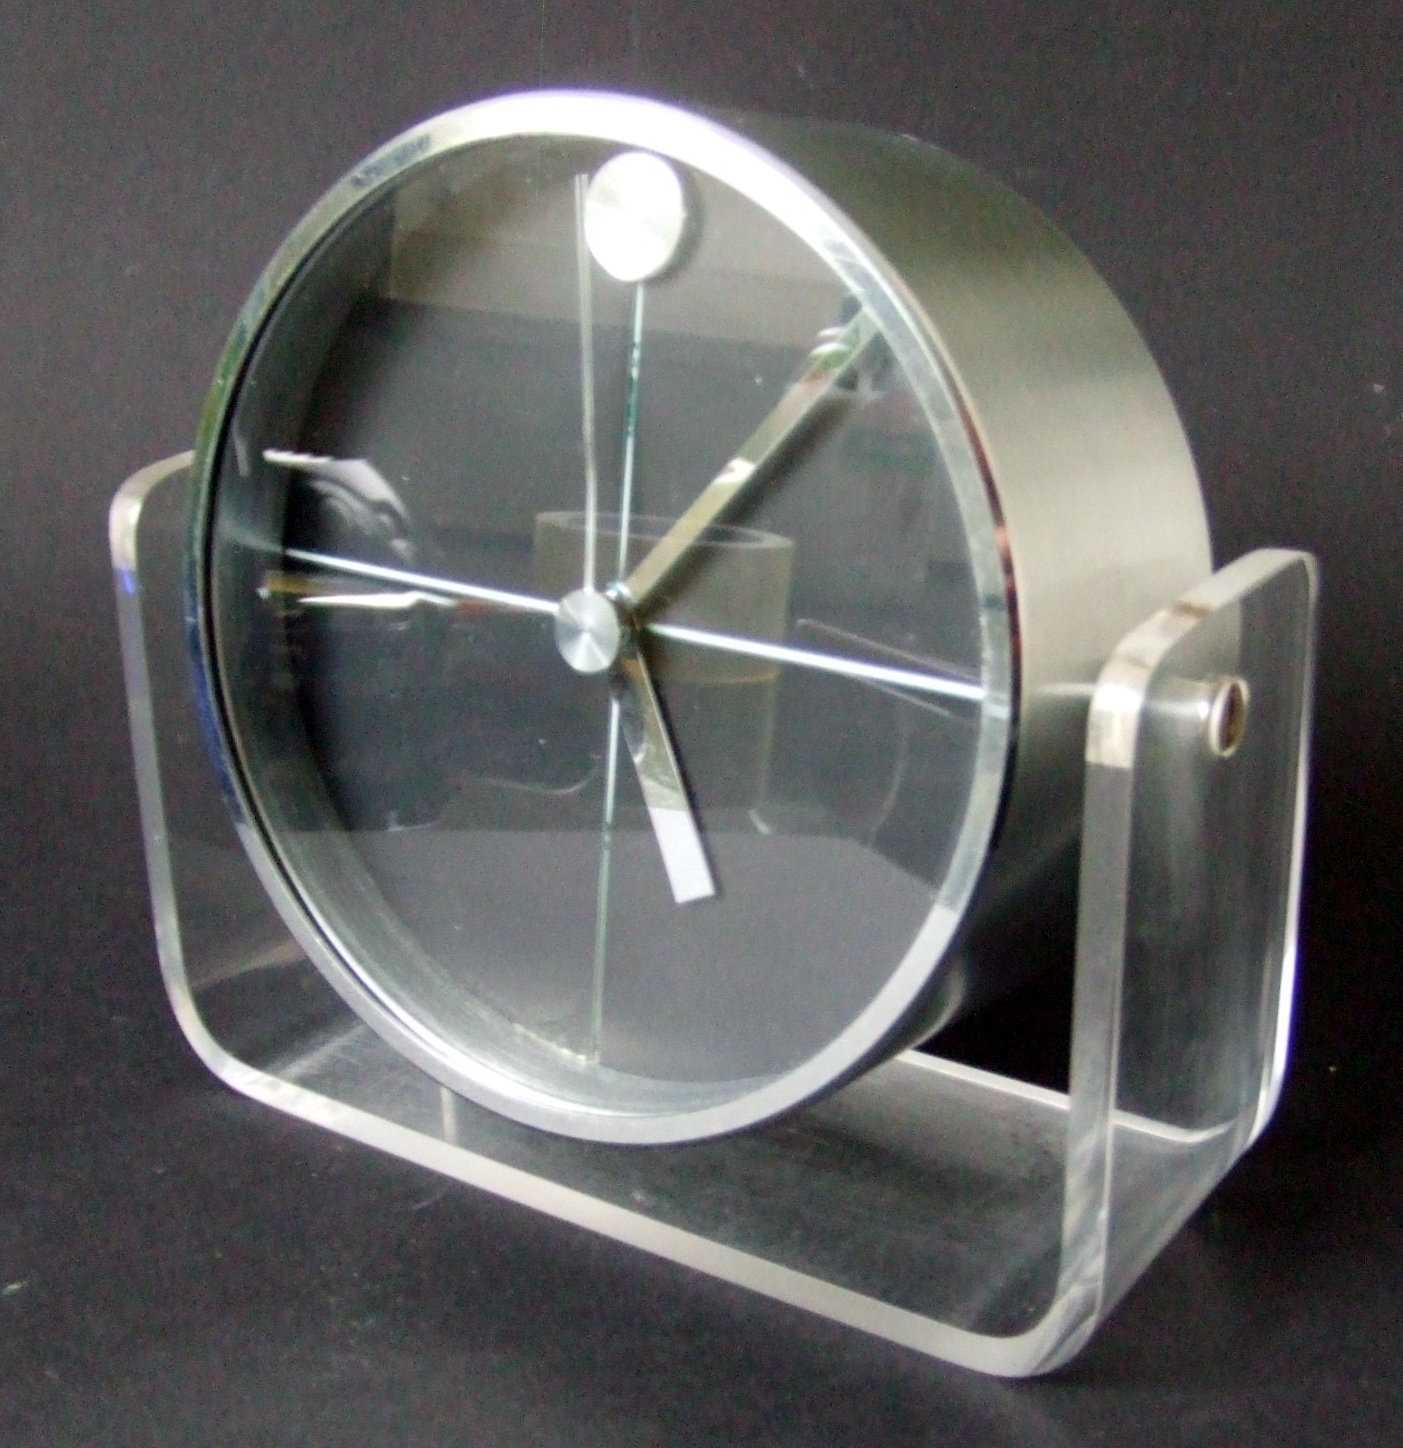 Modern Globe Circle Clock on Black Lucite Acrylic Base Hand Crafted